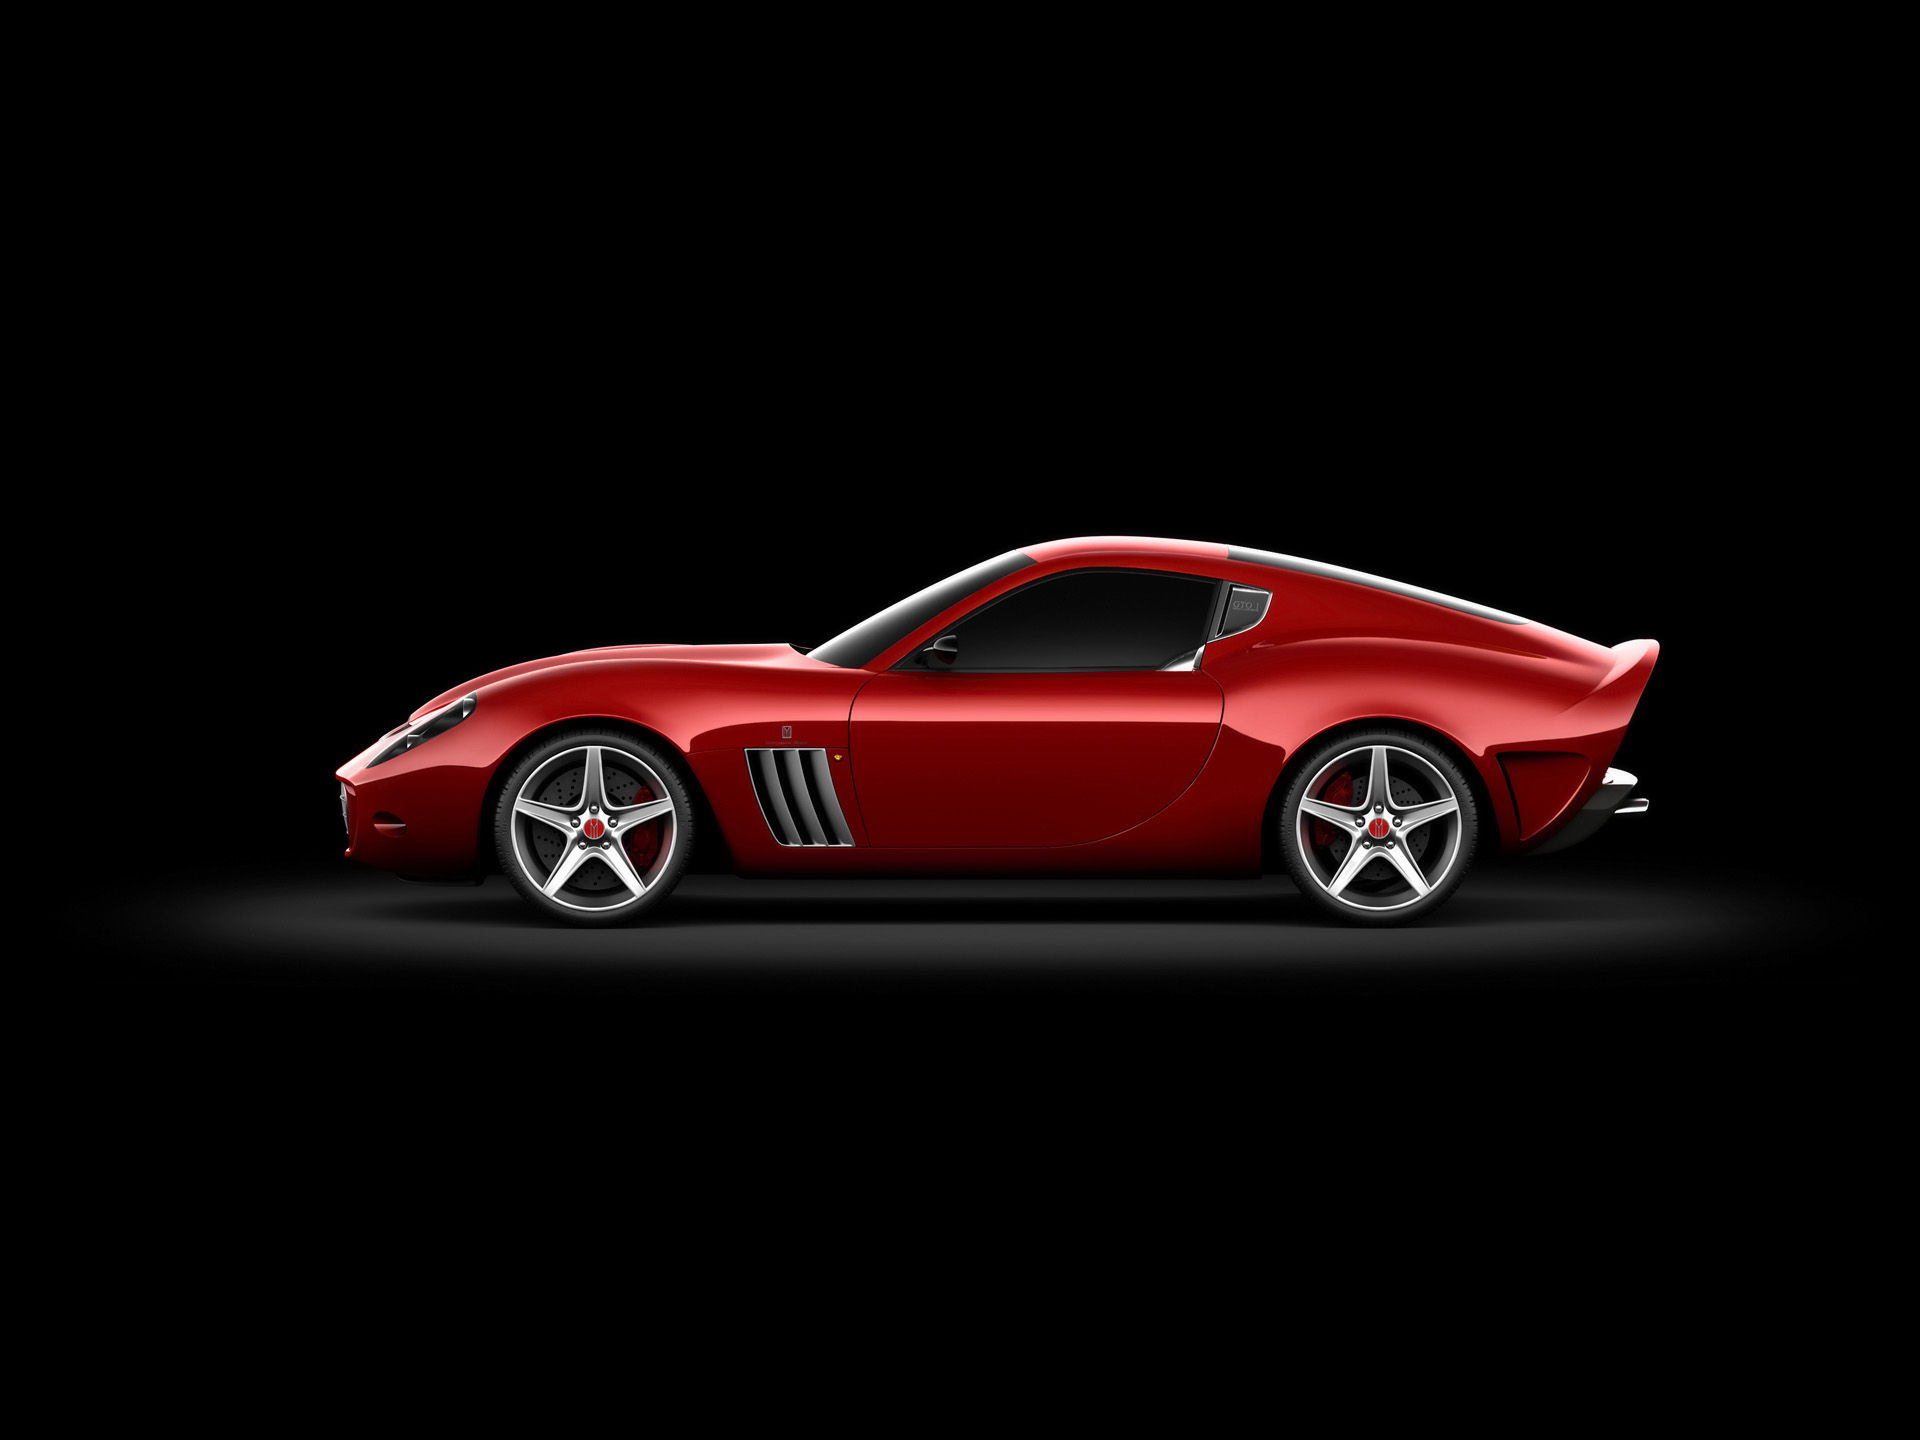 Vandenbrink Ferrari 599 GTO photo 48449